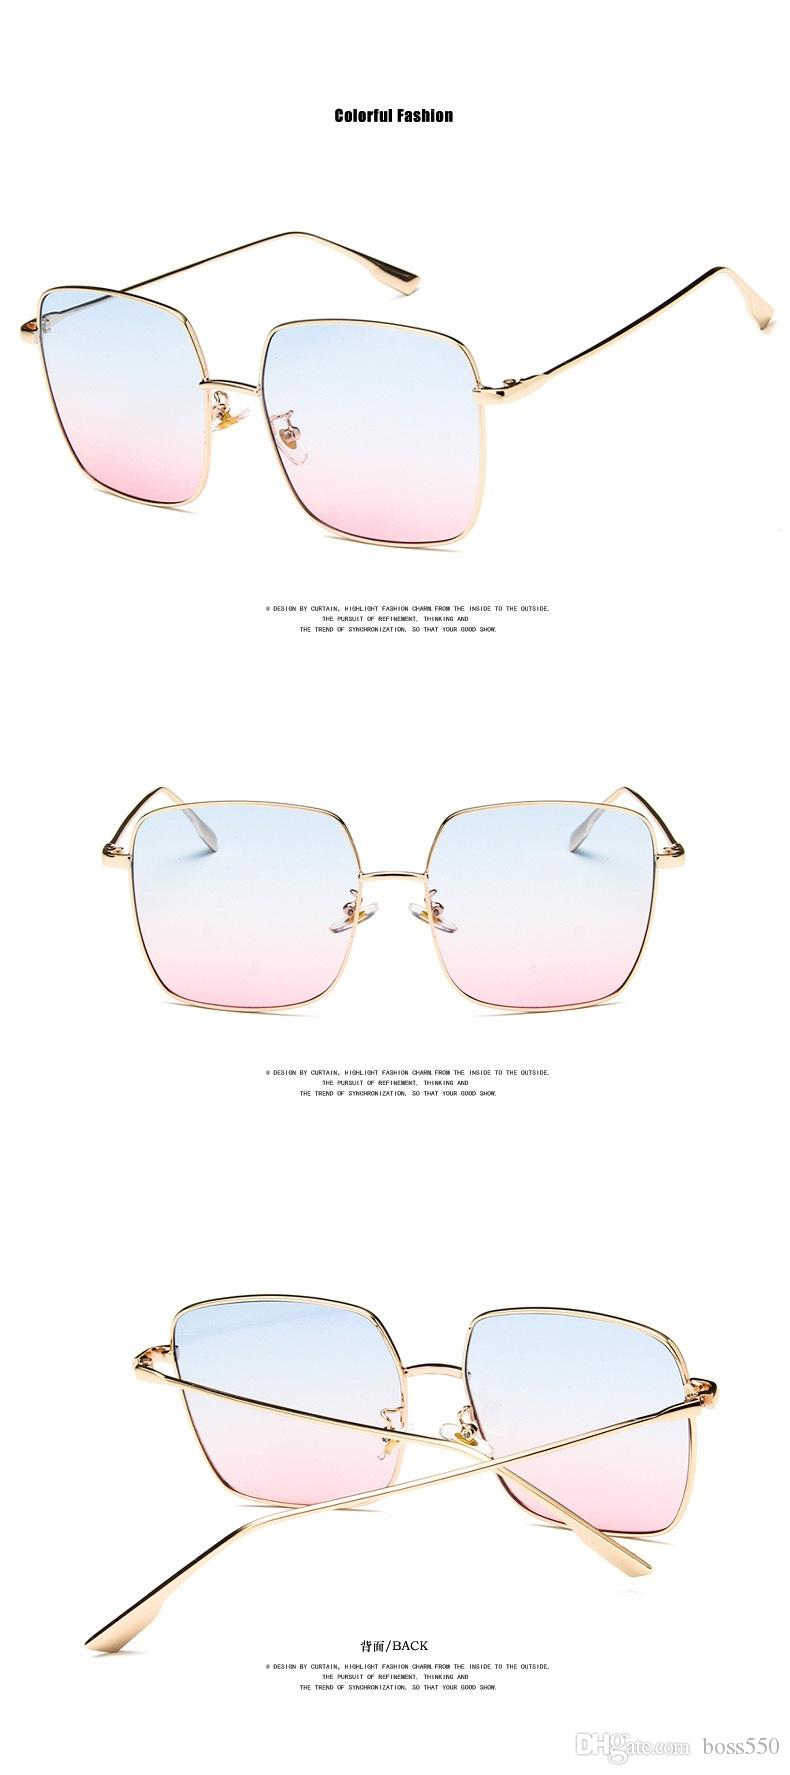 daa92665abf Web Celebrity 2018 Square Metal Sunglasses Fashion Polygonal Sunglasses  Trend Large Frame Thin Face Sunglasses Fashion Accessories Sunglasses  Online with ...